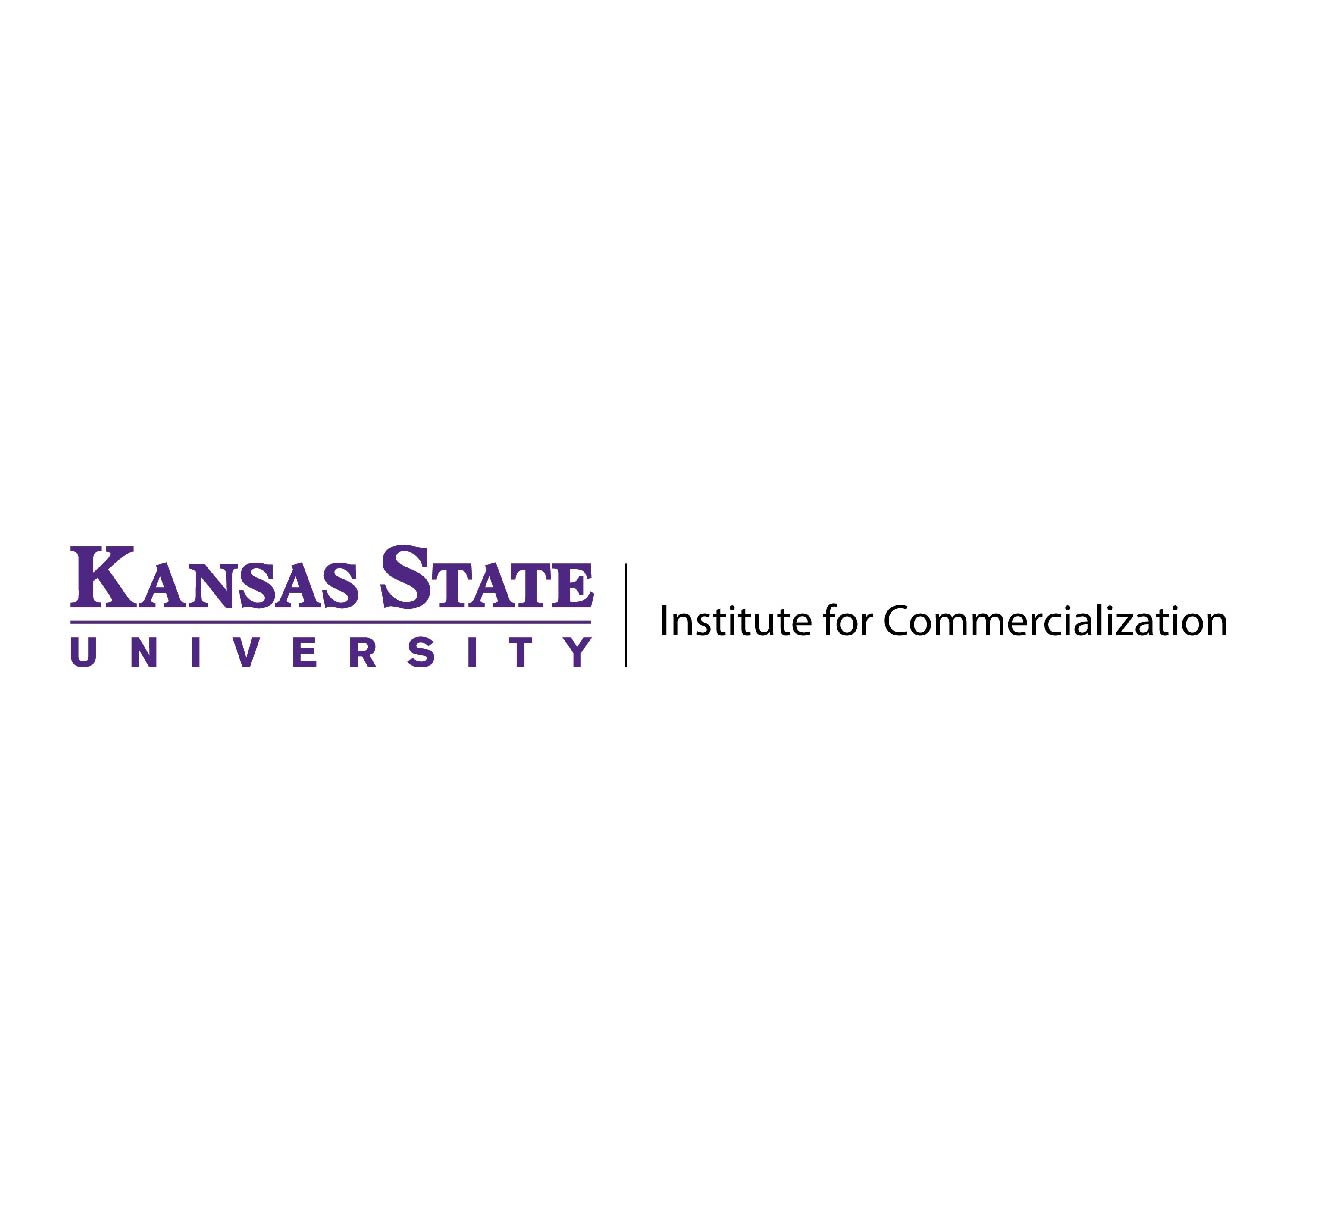 K-State_Comm-01